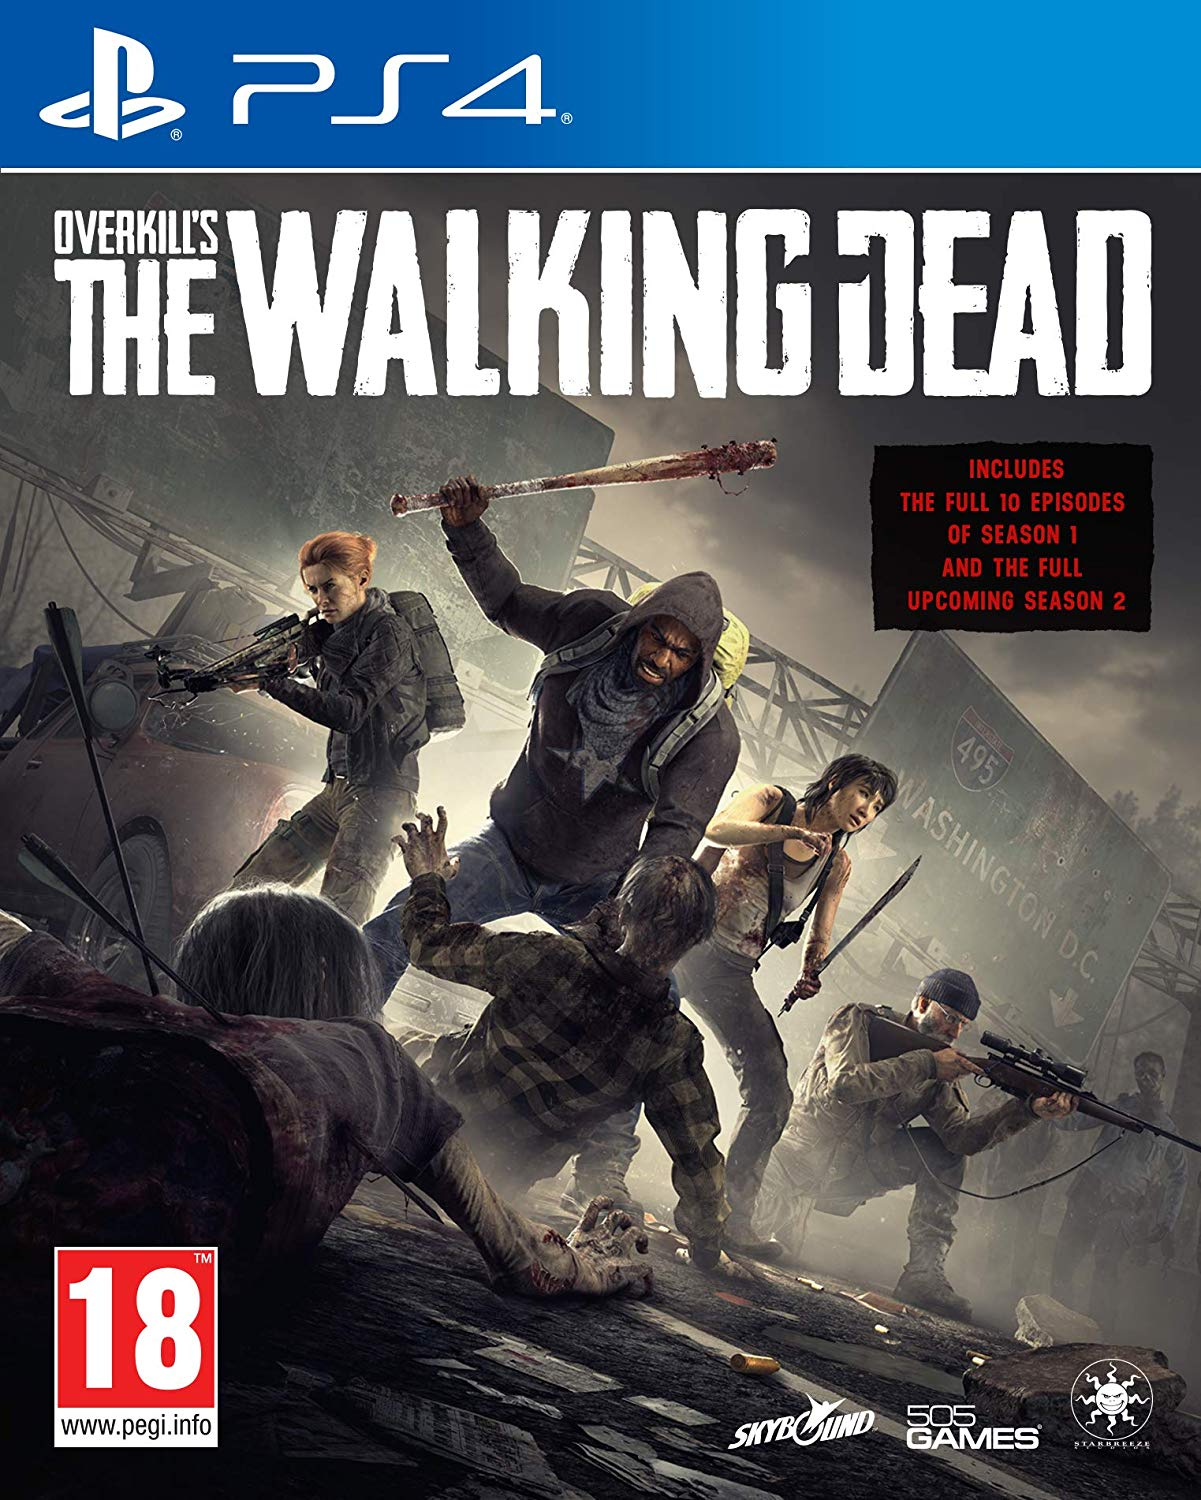 Overkills The Walking Dead - PlayStation 4 Játékok